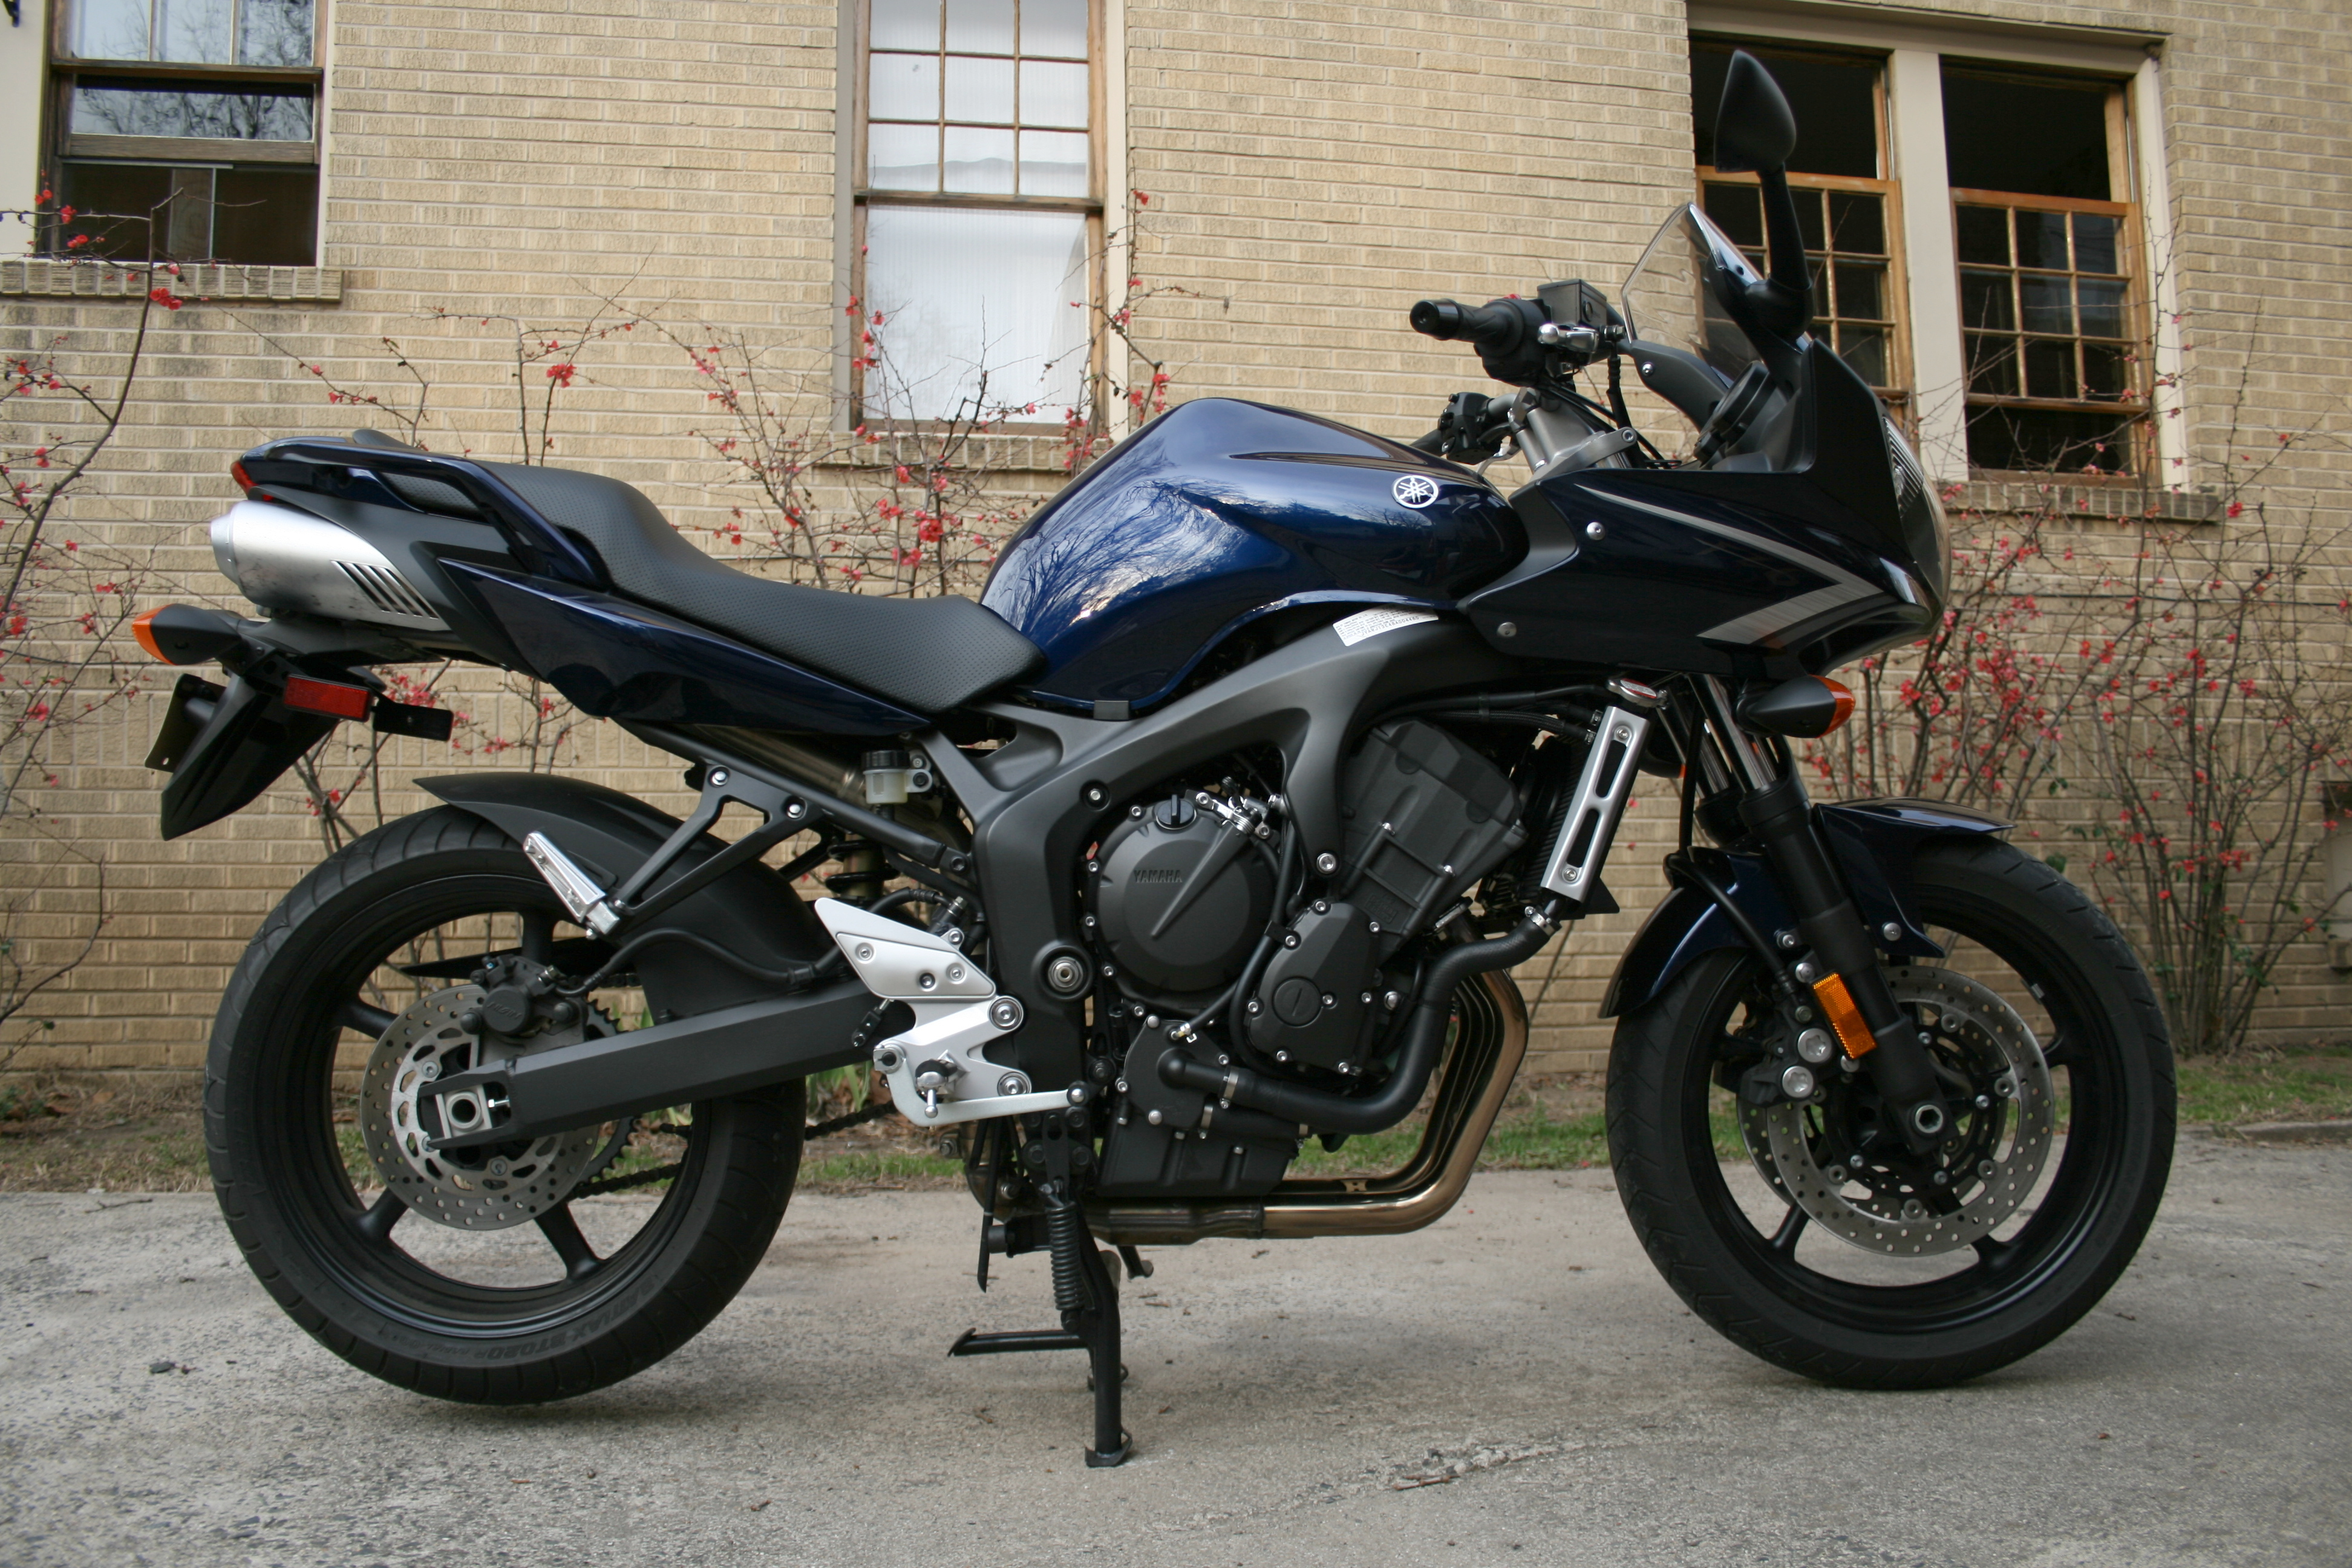 Yamaha FZ 6N S2 ABS 2009 images #91879